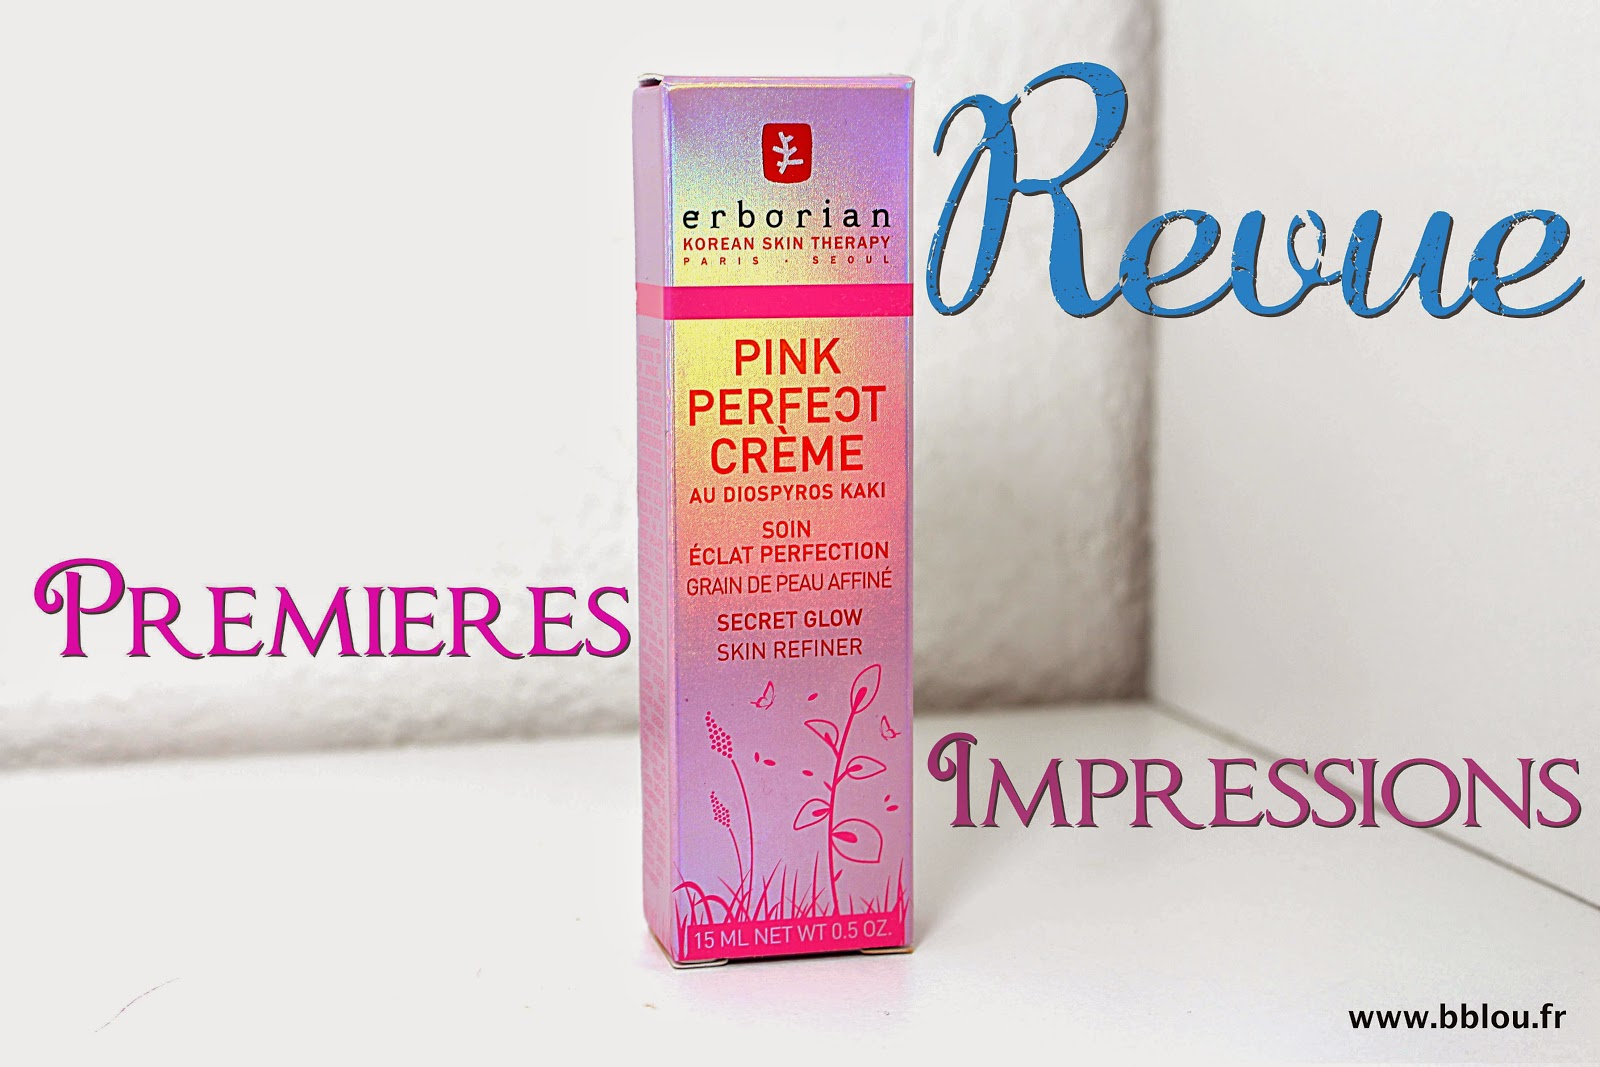 http://www.beautybylou.com/2014/09/revue-premieres-impressions-pink.html